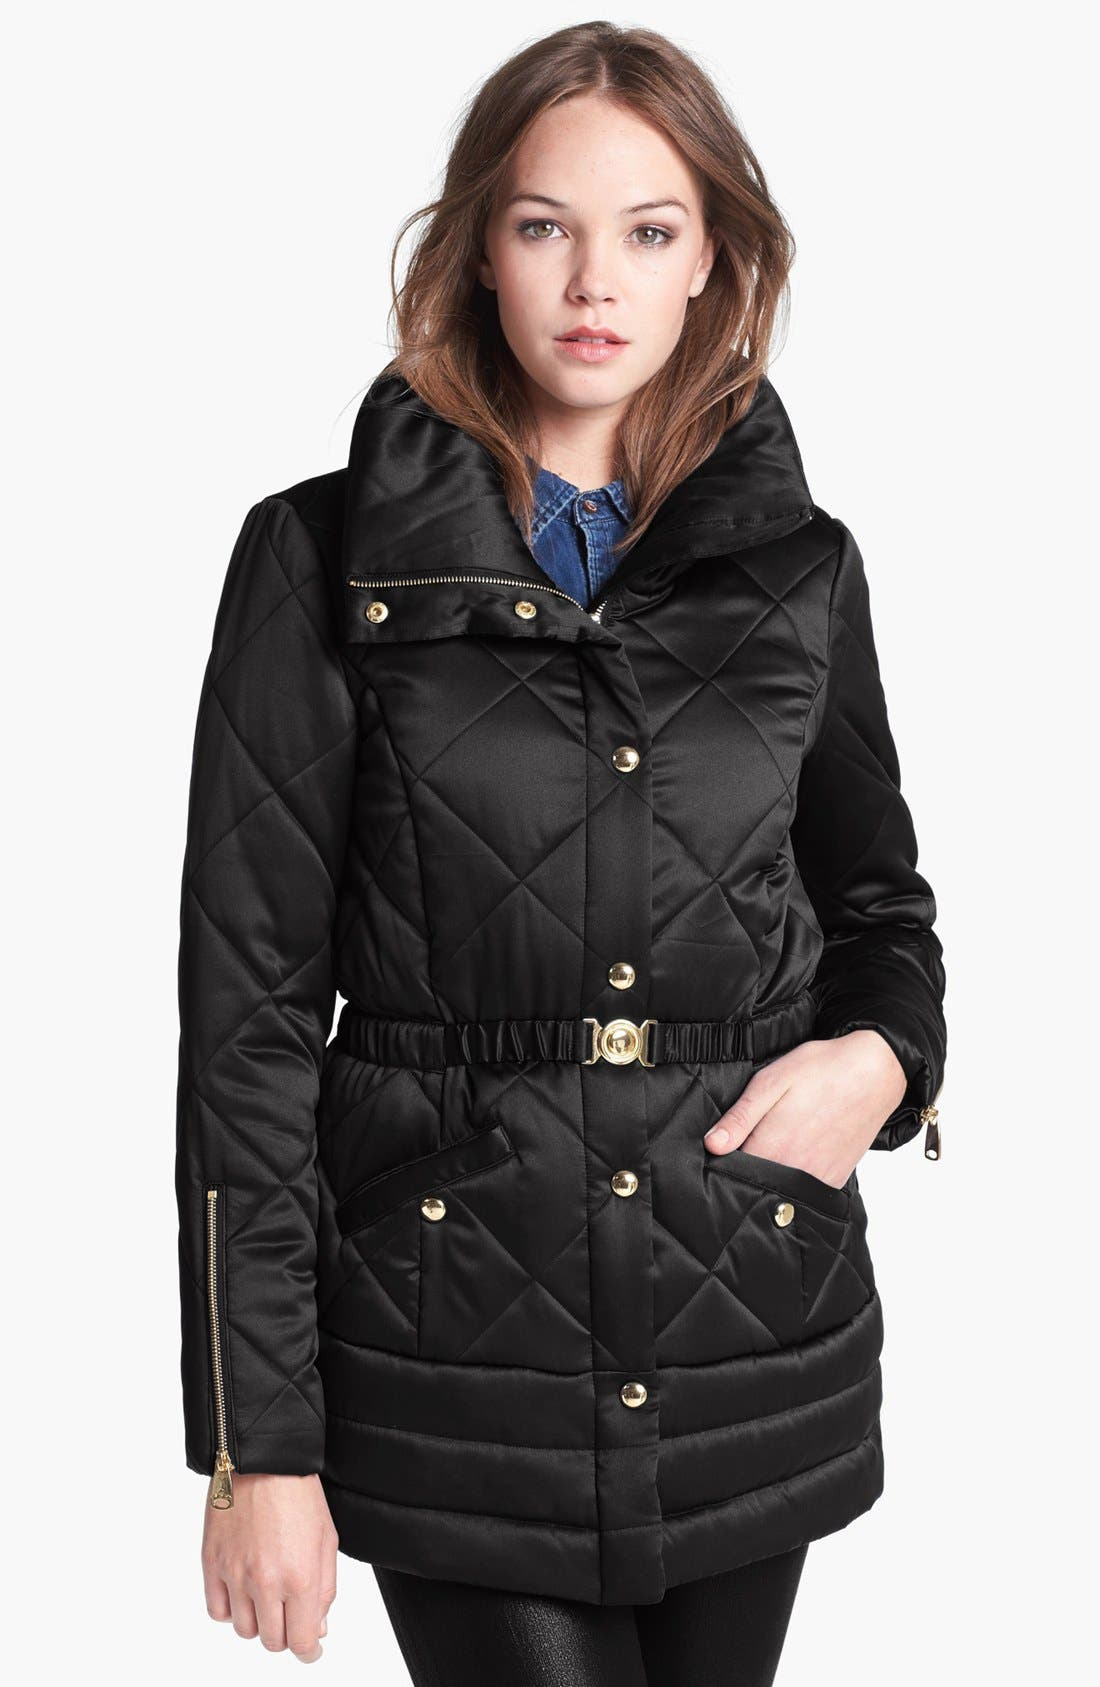 Alternate Image 1 Selected - Via Spiga Stand Collar Quilted Jacket